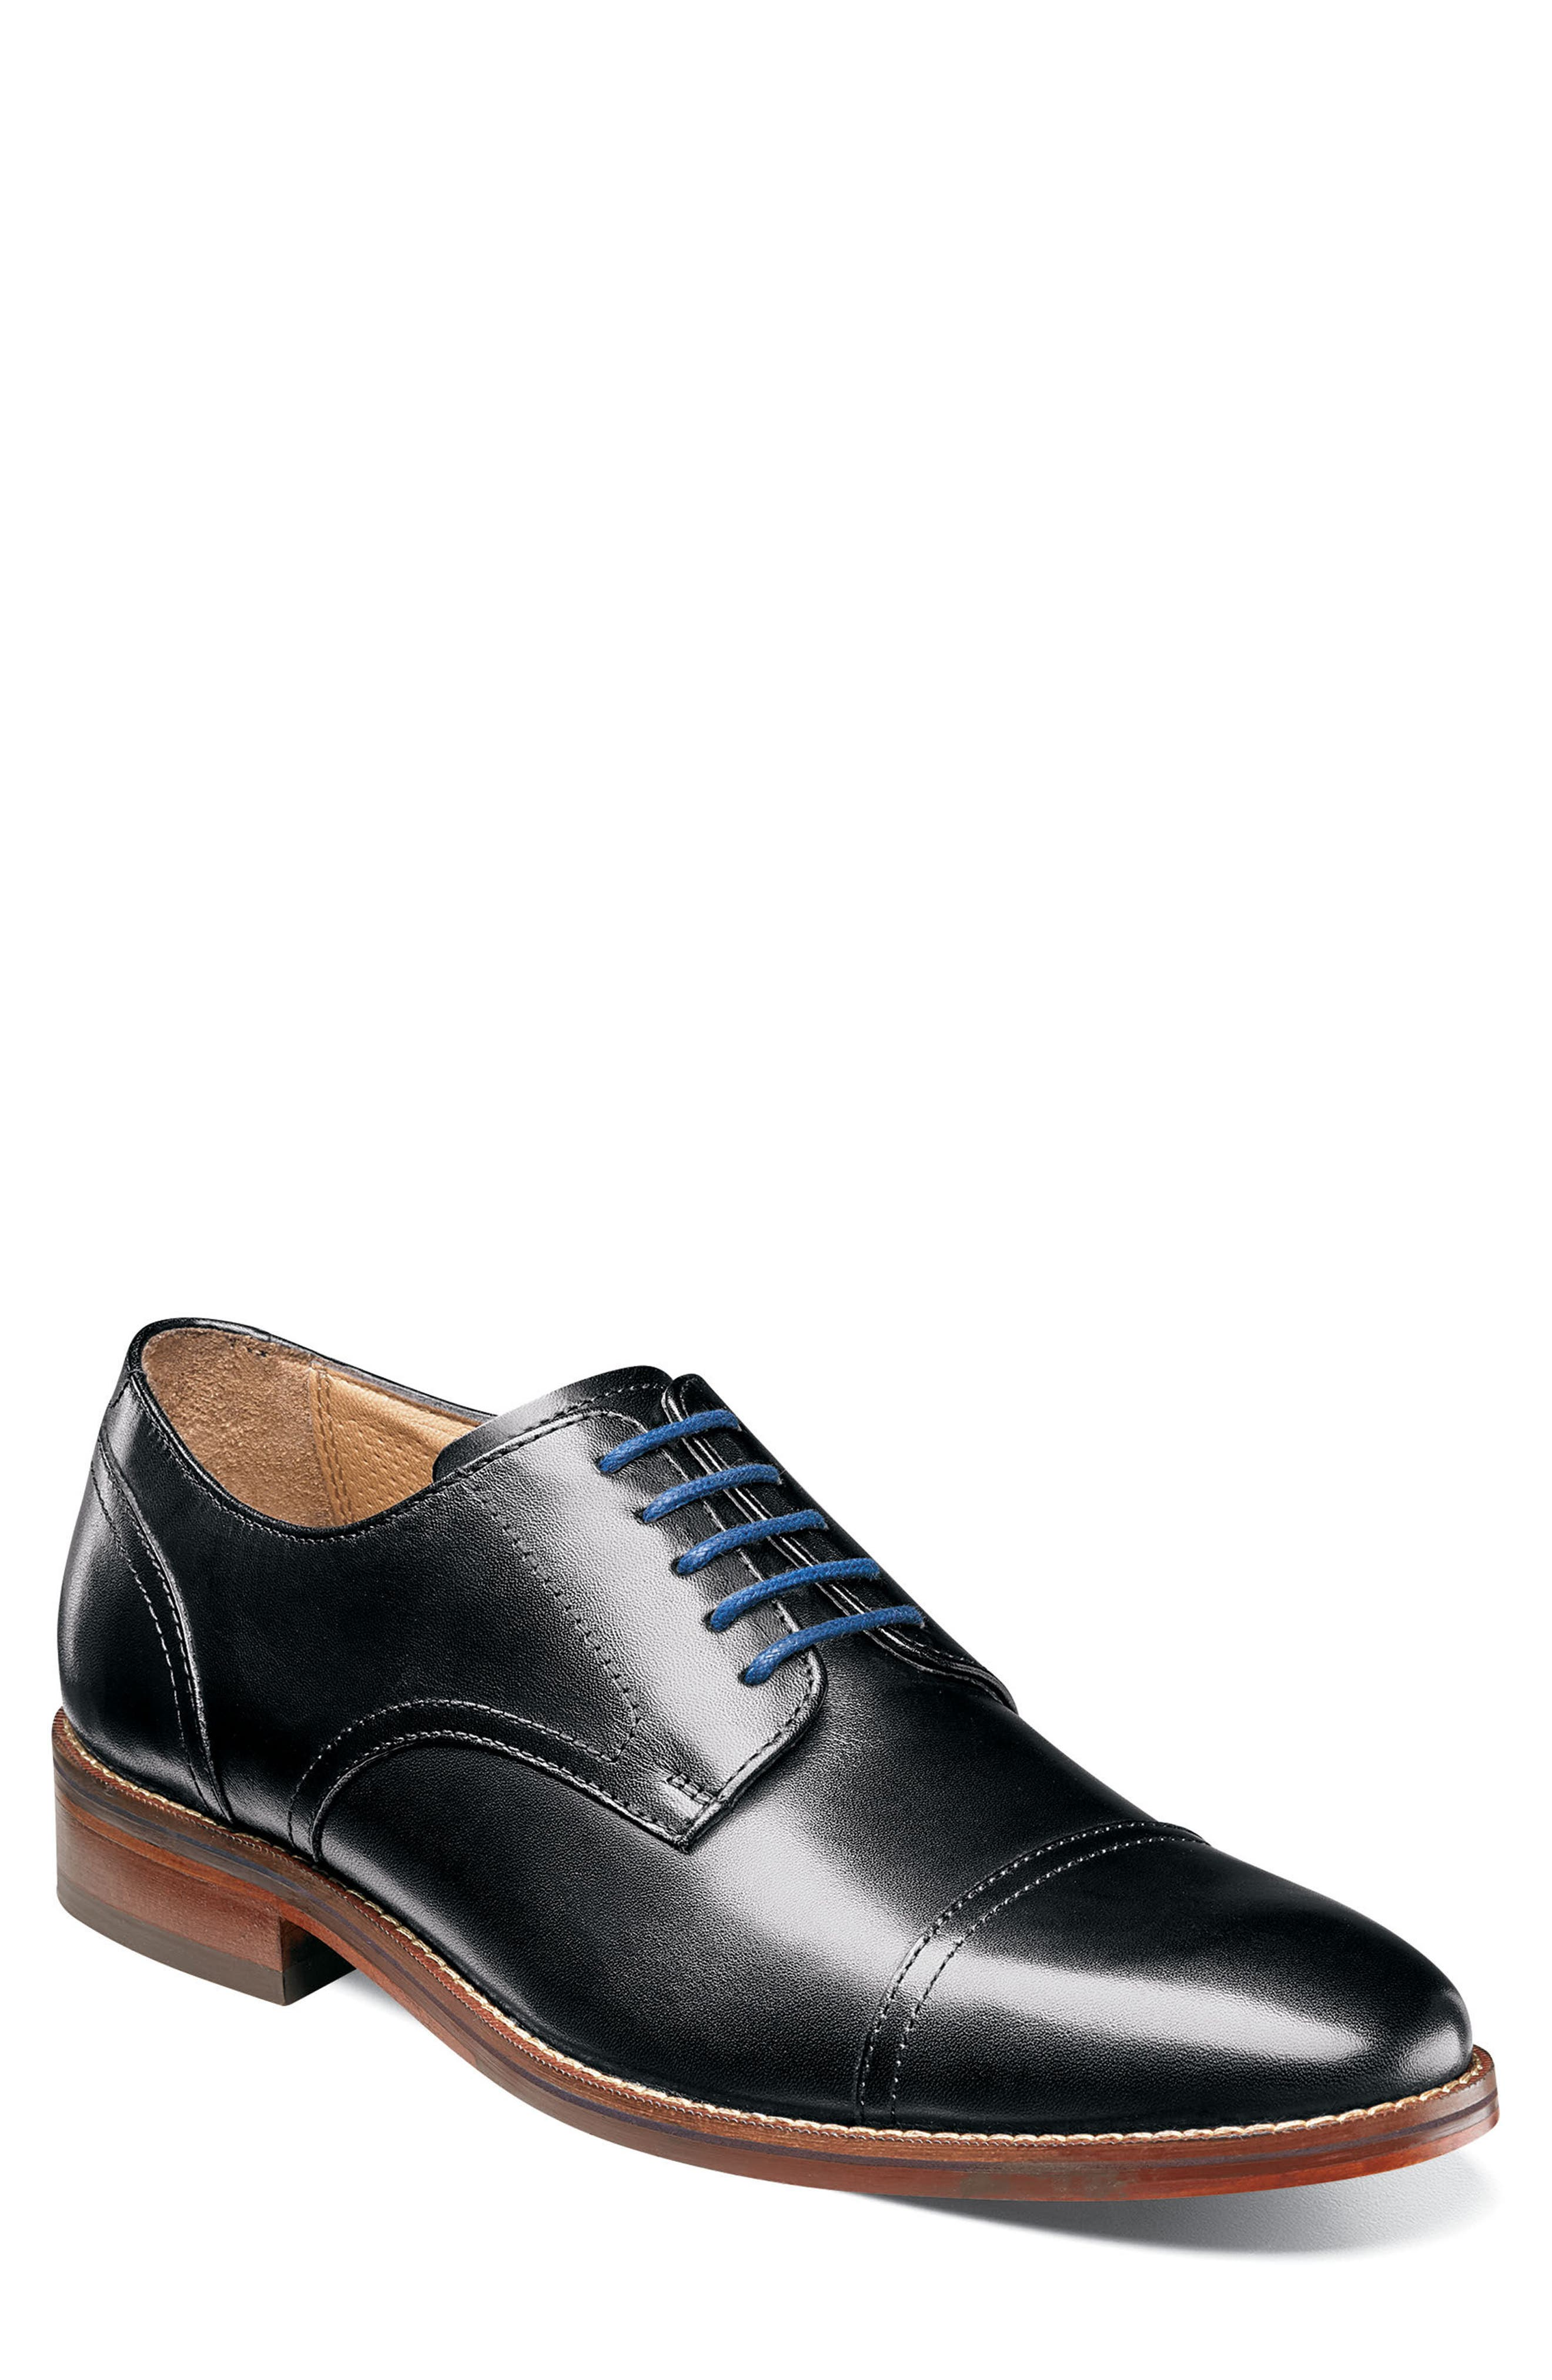 Salerno Cap Toe Derby,                             Main thumbnail 1, color,                             BLACK LEATHER